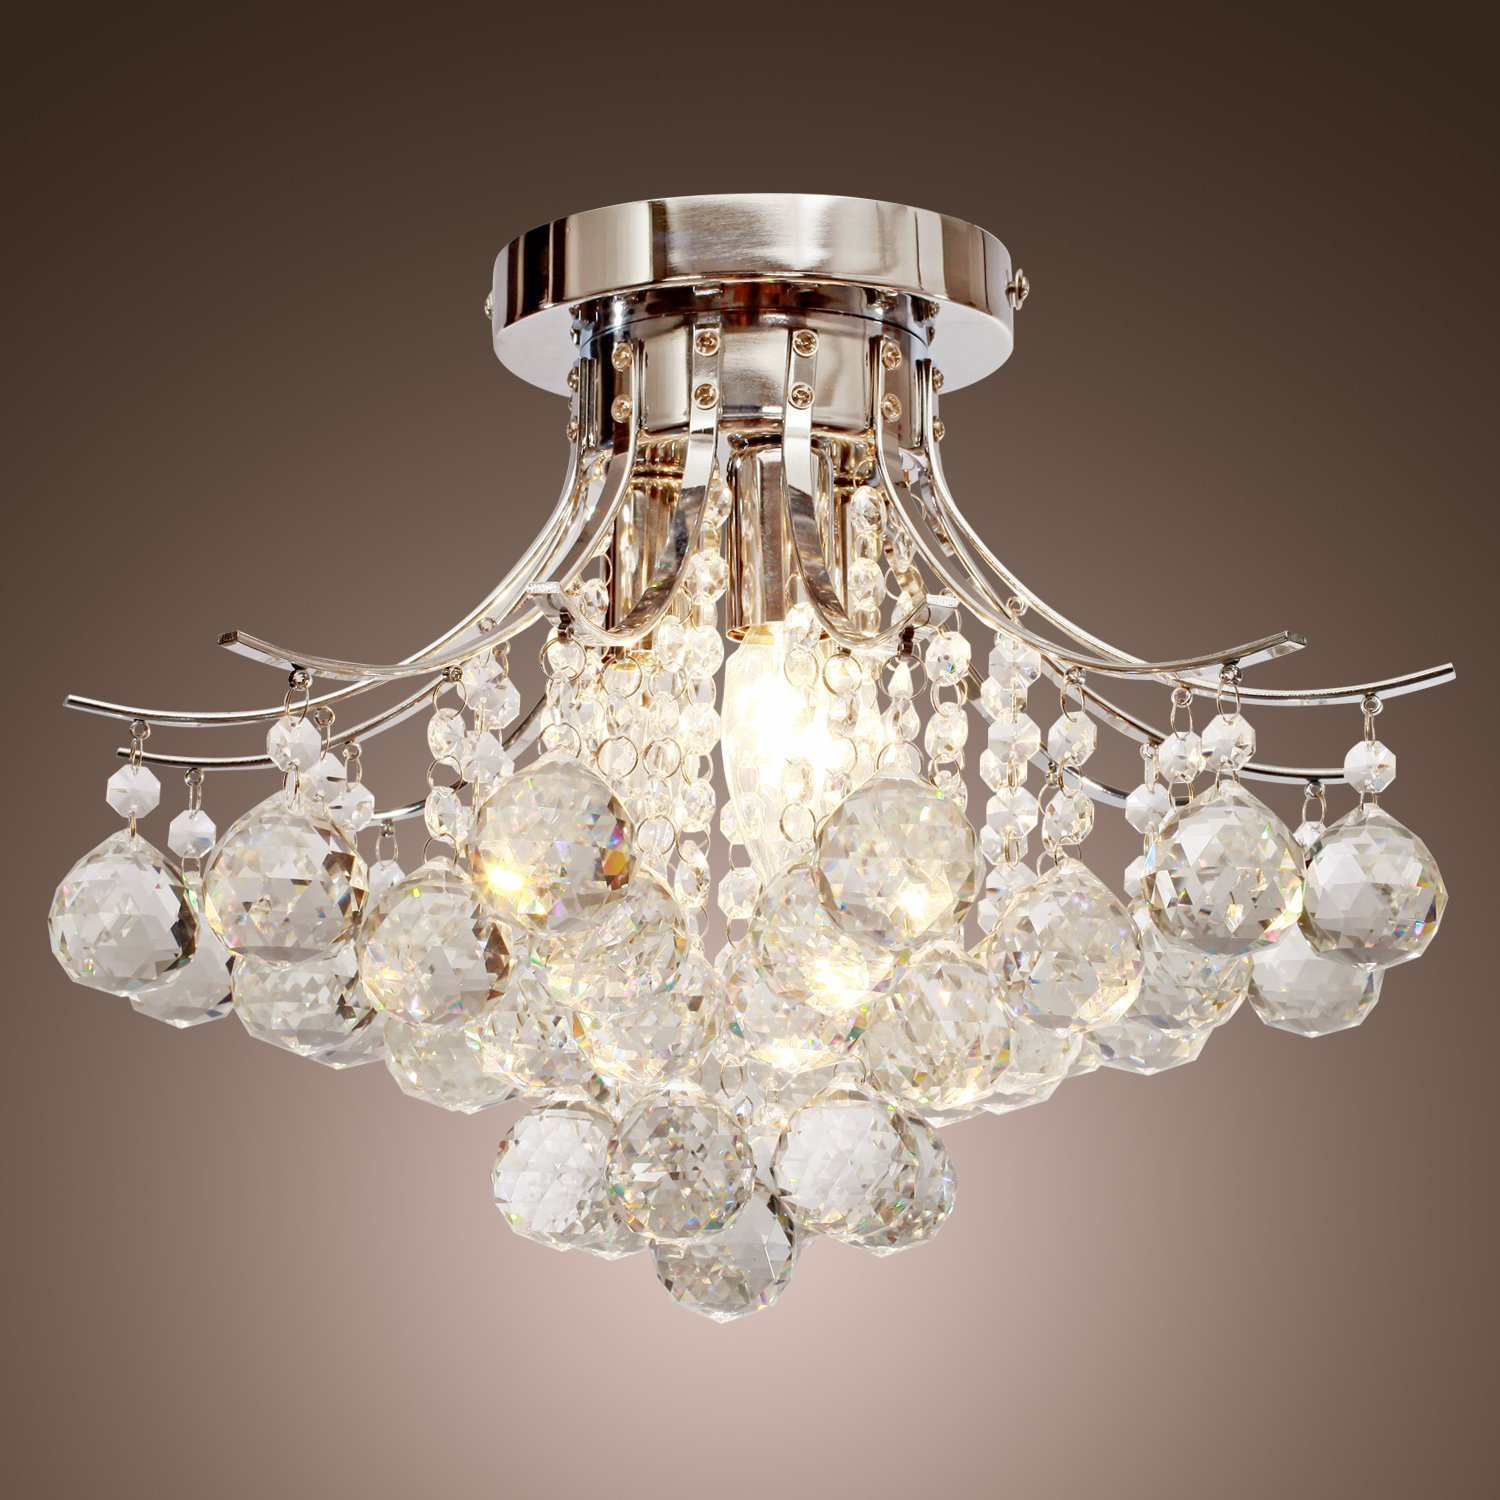 Chandeliers ceiling lights Transform Any Home Into A Palace